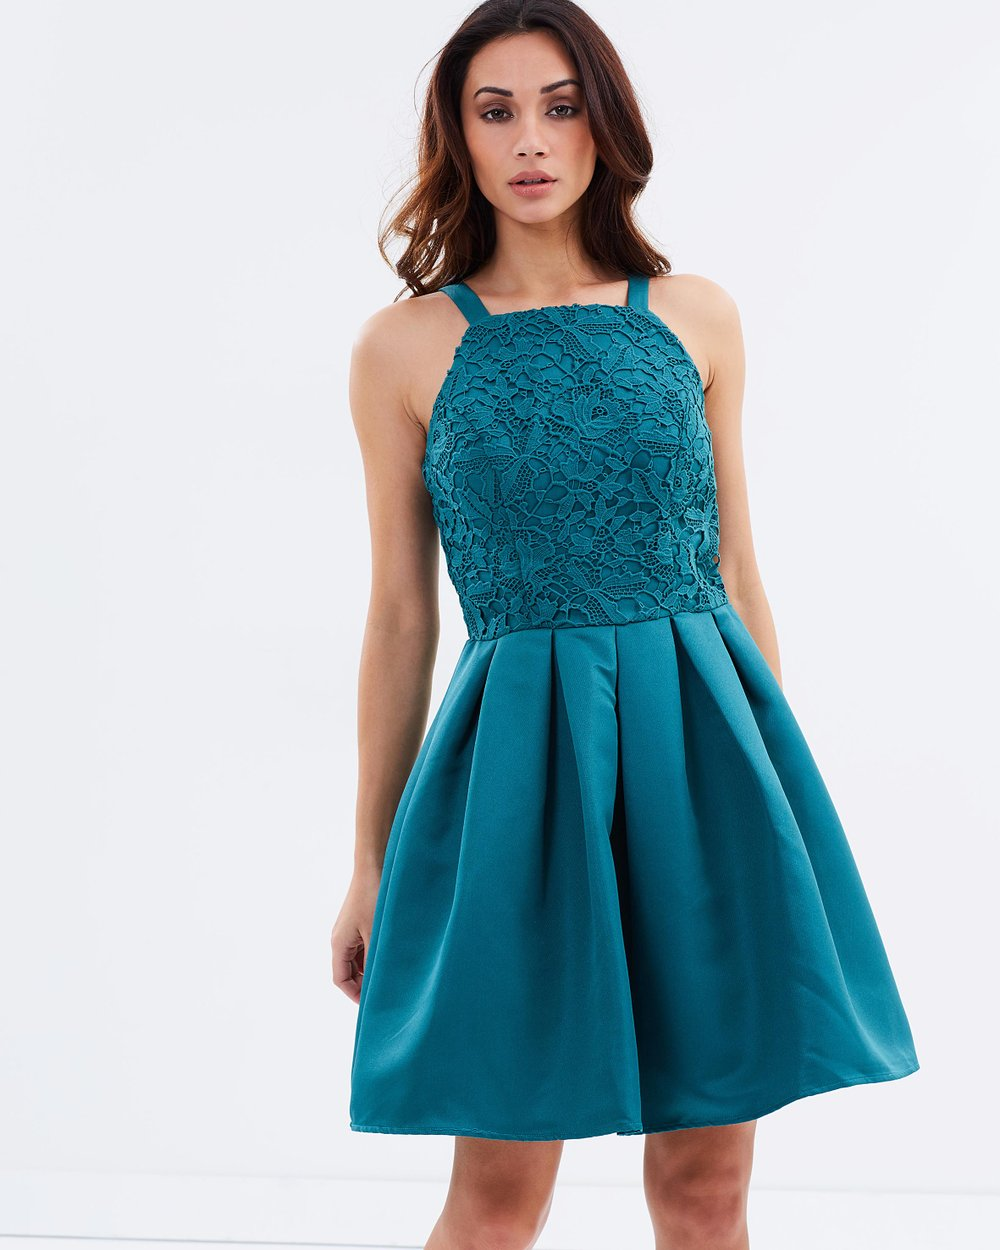 Teal Dresses | Teal Dress Online | Buy Teal Dresses Australia |- THE ...